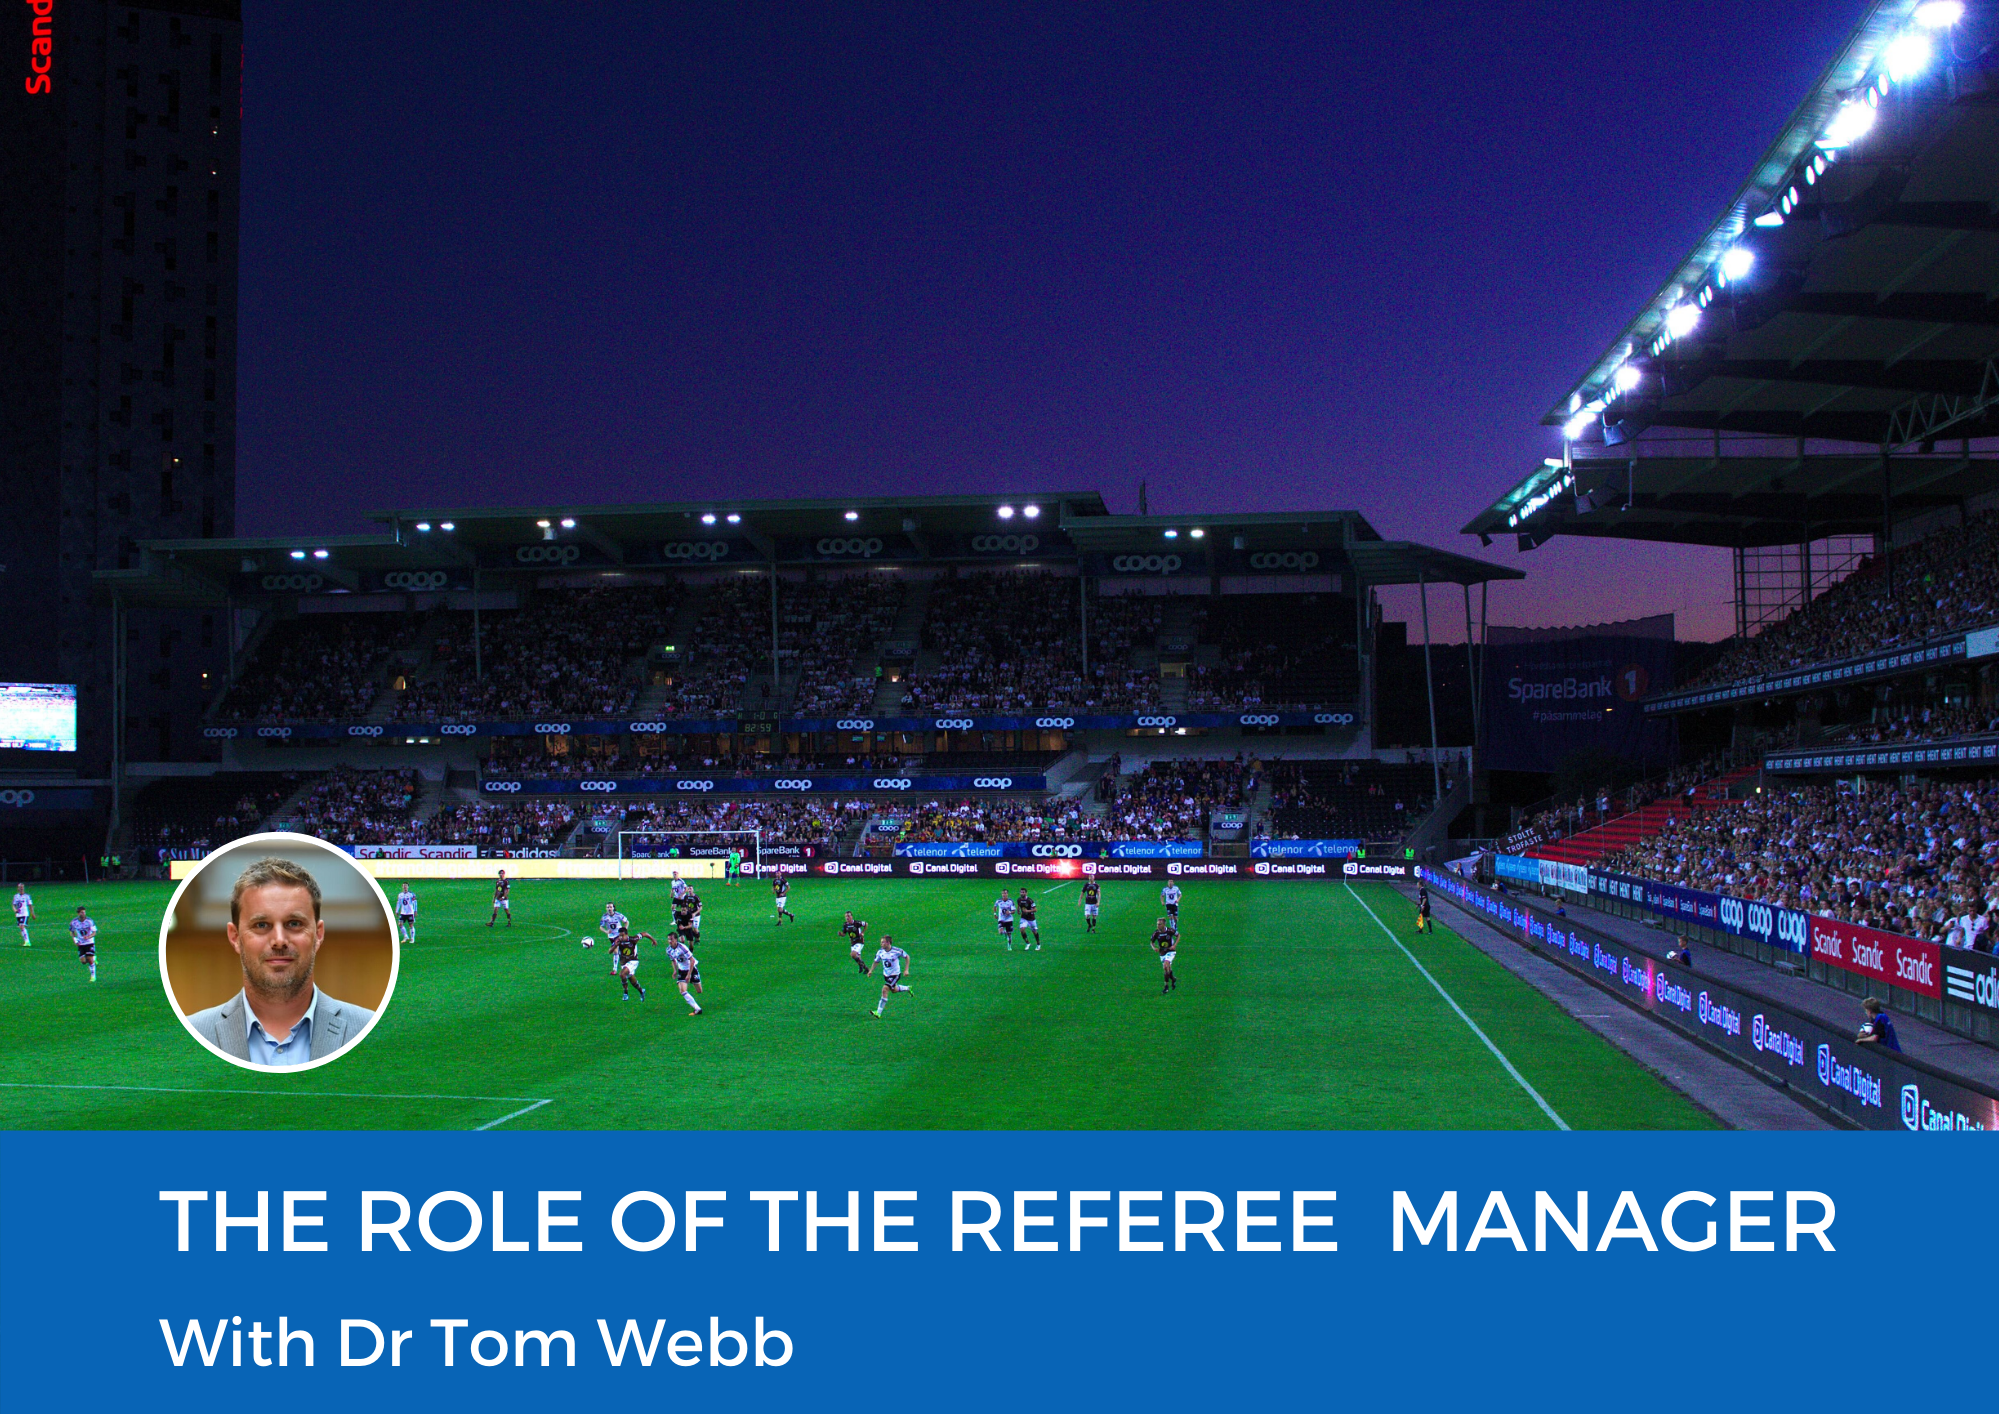 The Role of the Referee Manager